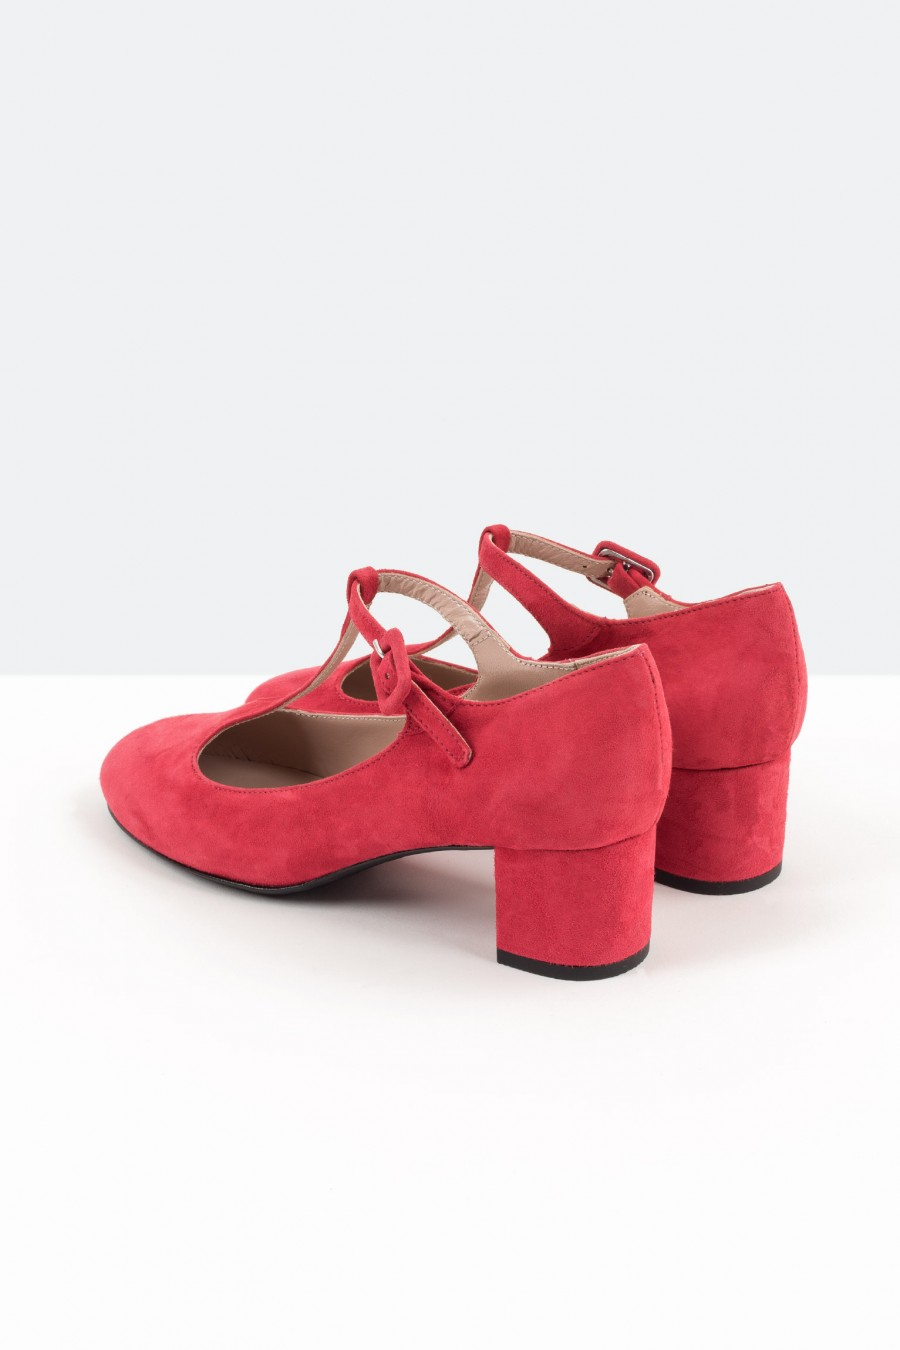 Red suede bebè shoes with covered buckle